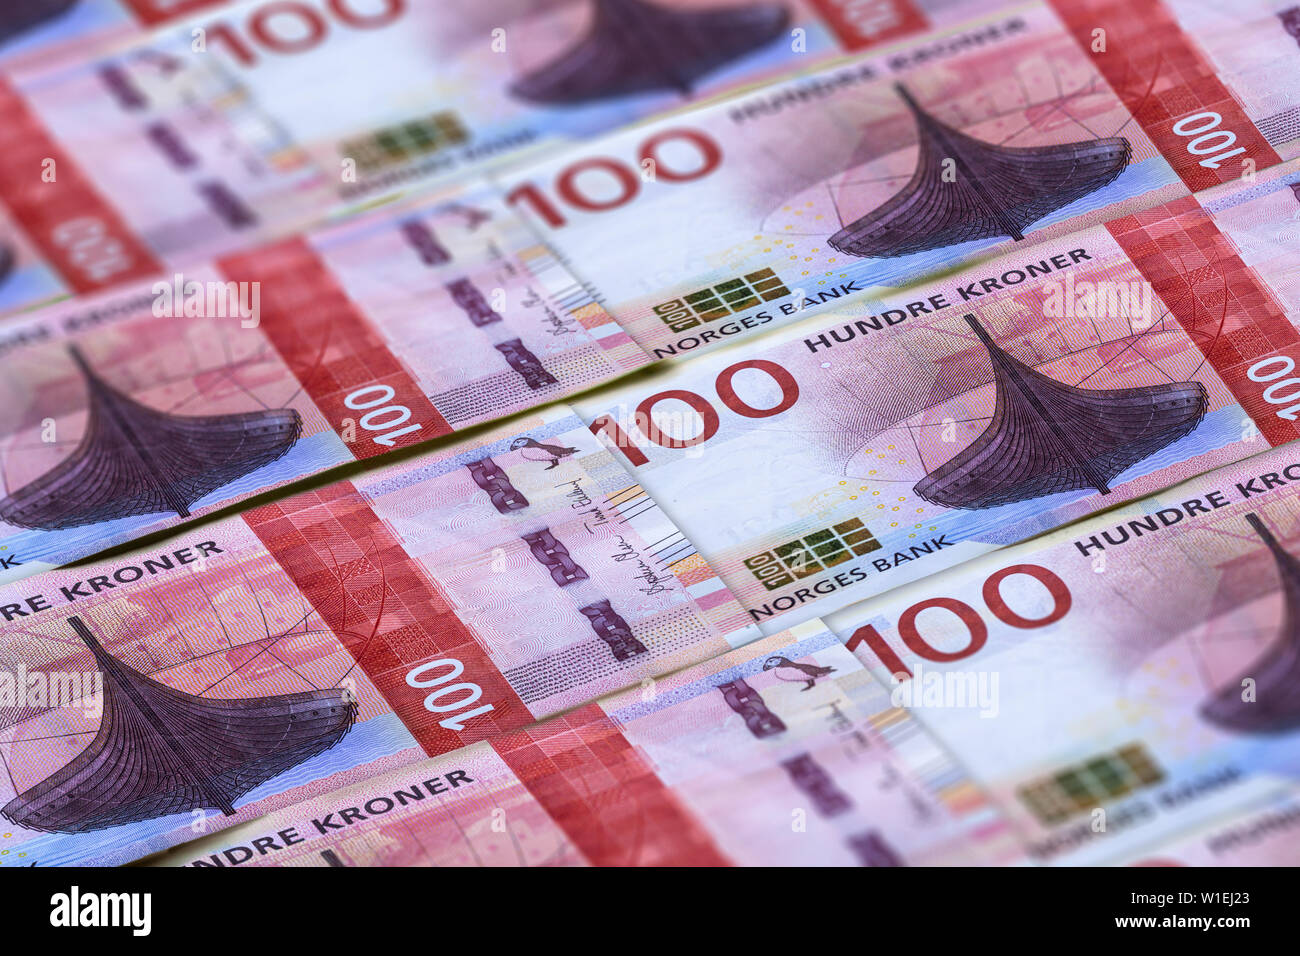 Norwegian currency. Money of Norway closeup background. Hundre kronor - Stock Image